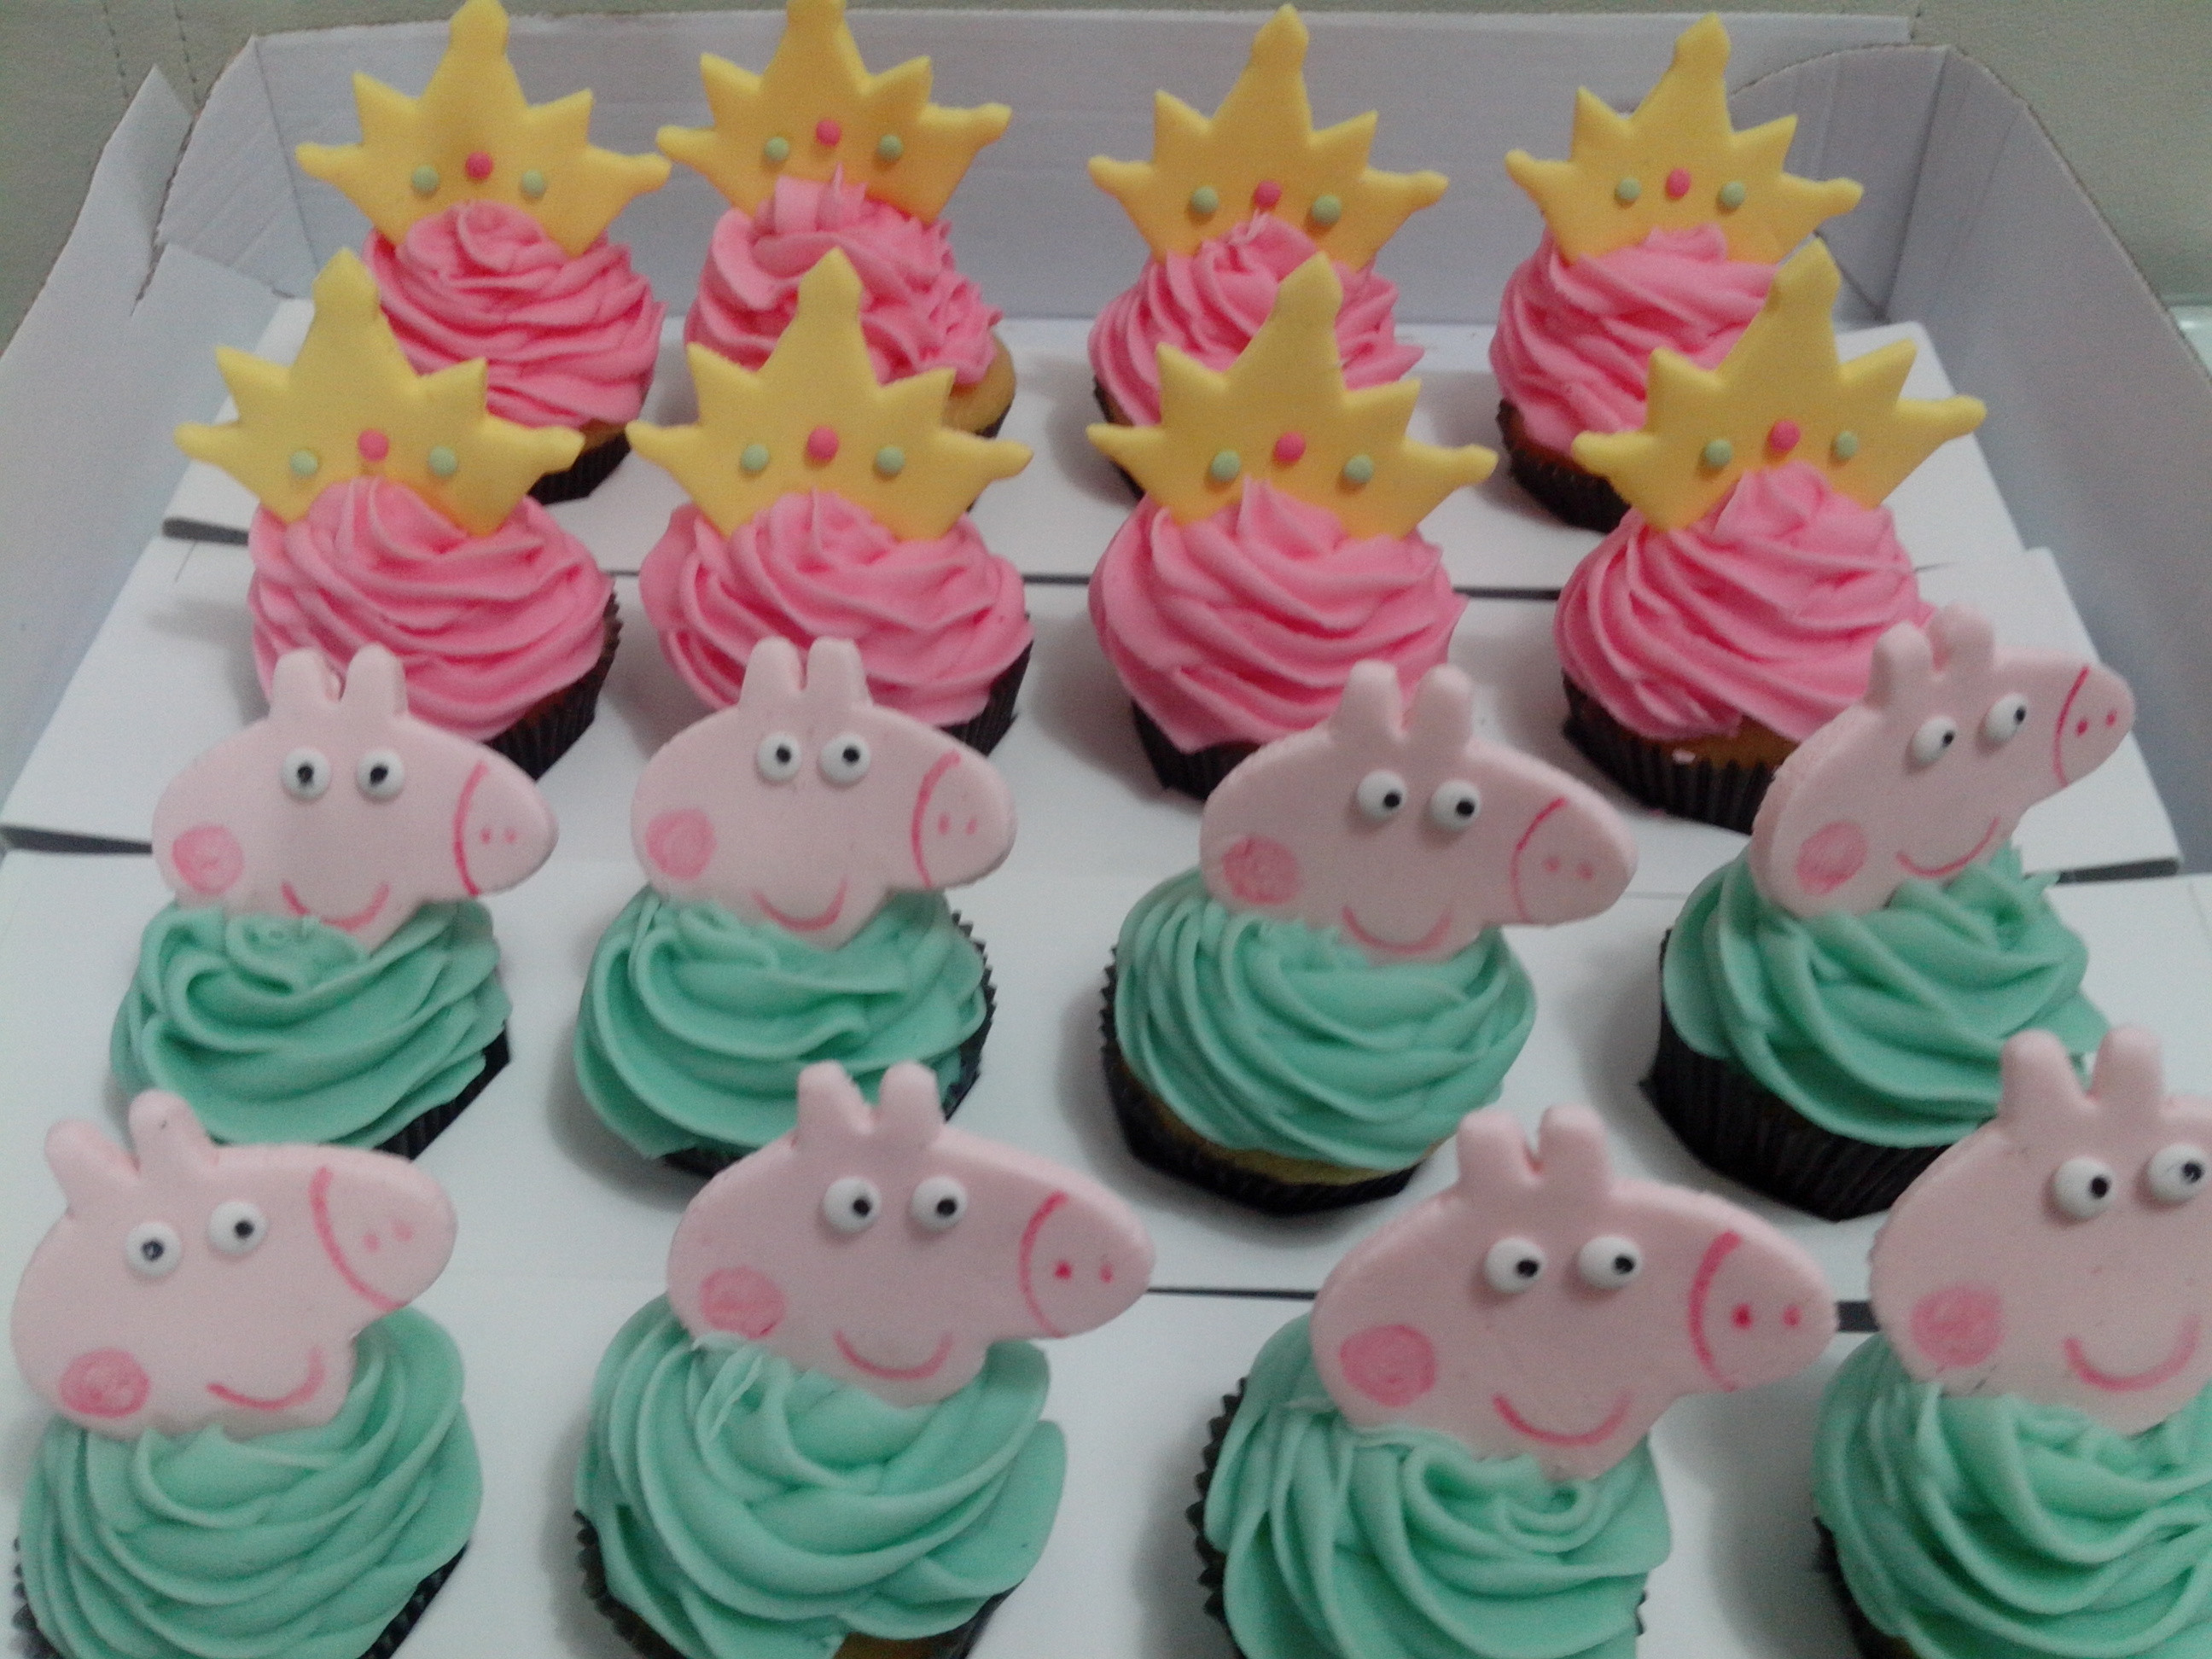 Peppa Pig Cupcakes  Peppa Pig Cupcakes Cake Ideas and Designs